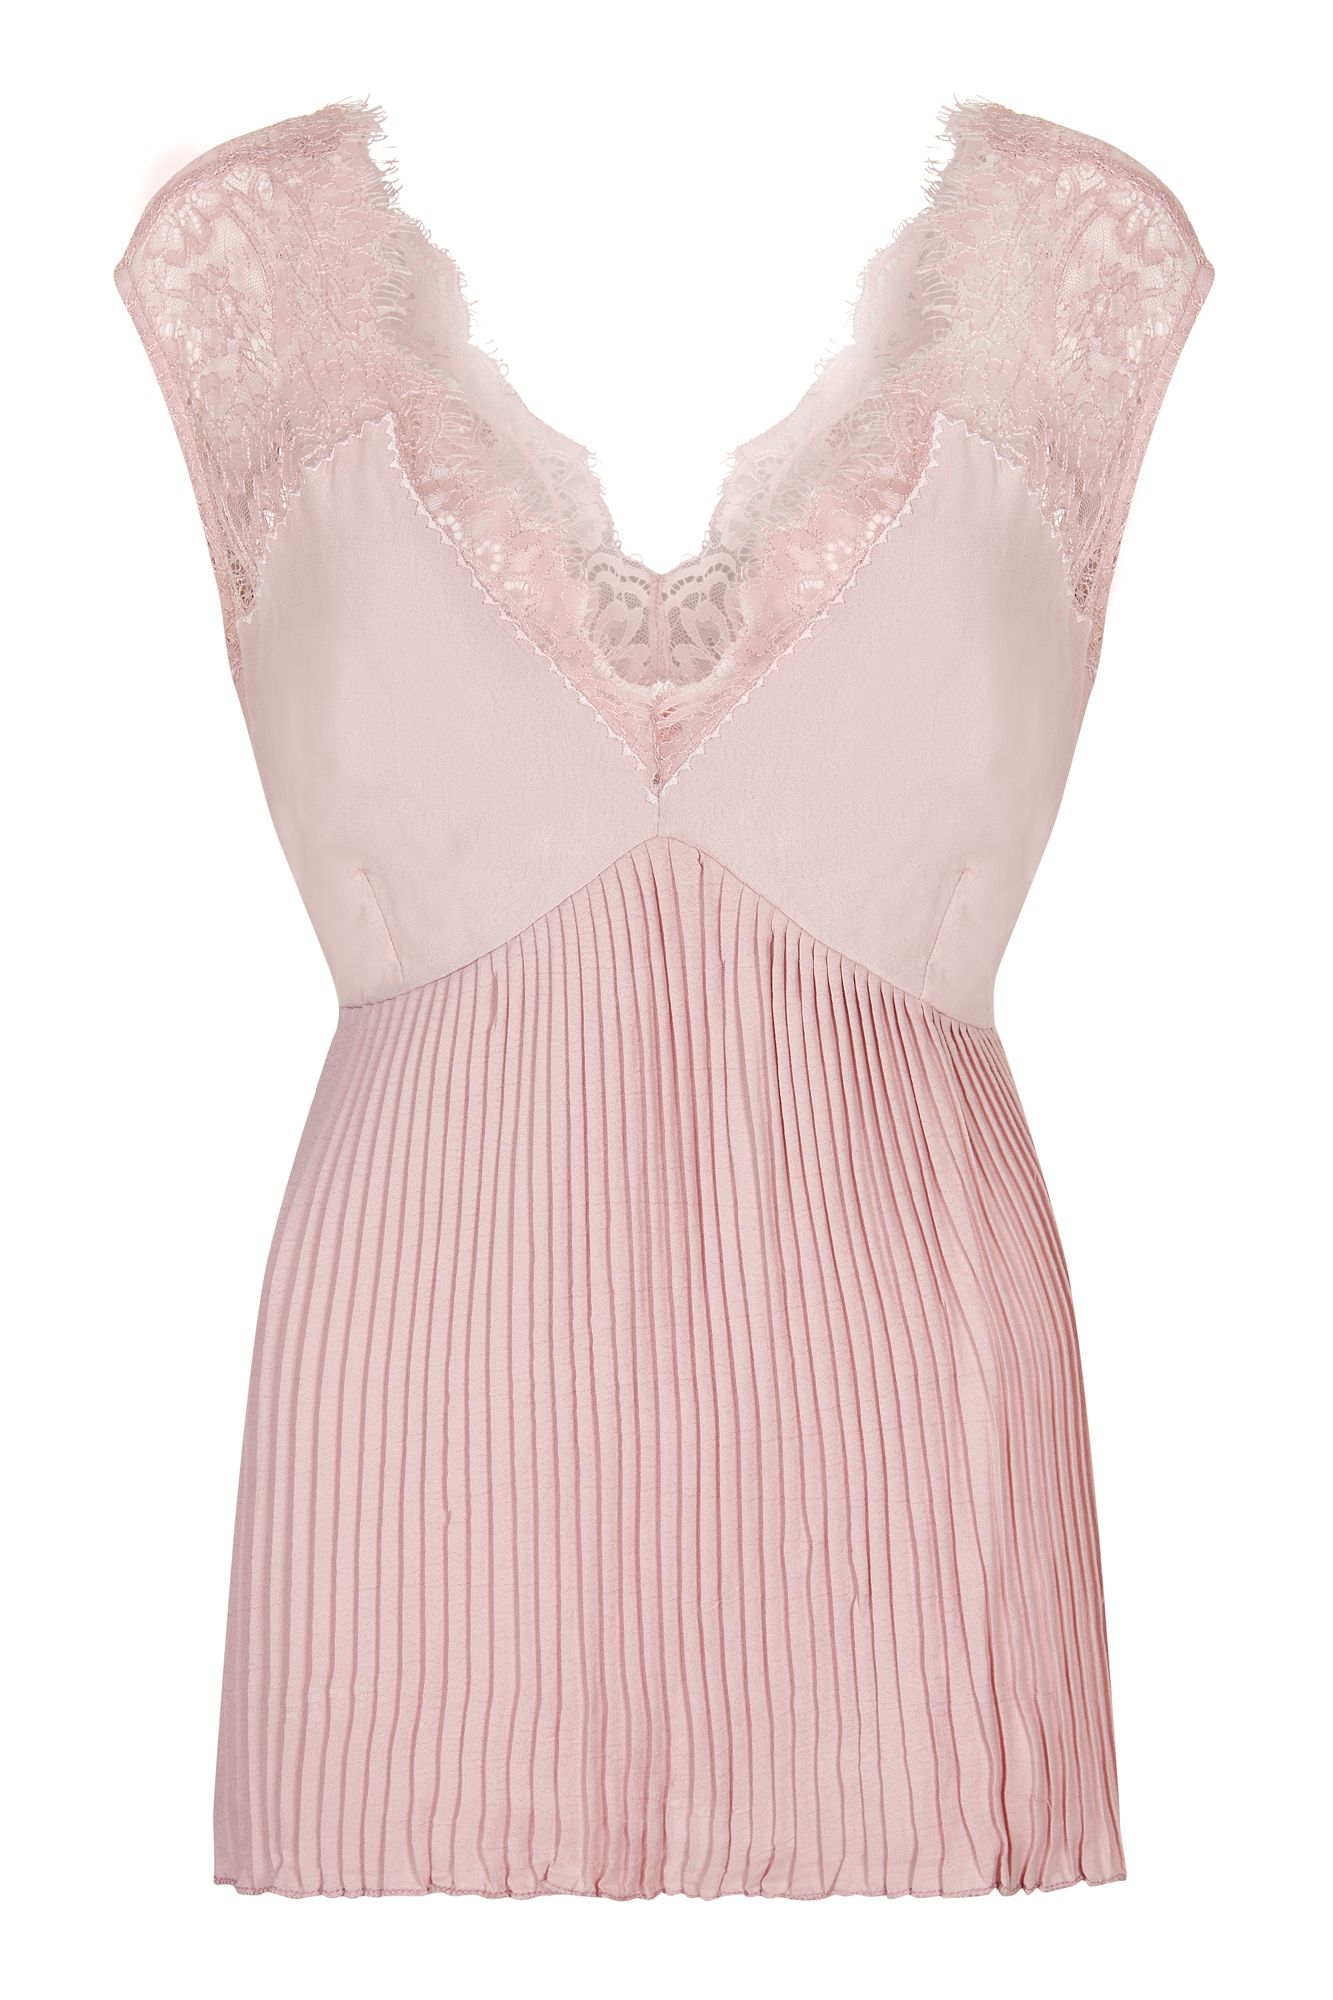 Nougat London Flora Pleated Lace Camisole, Pink